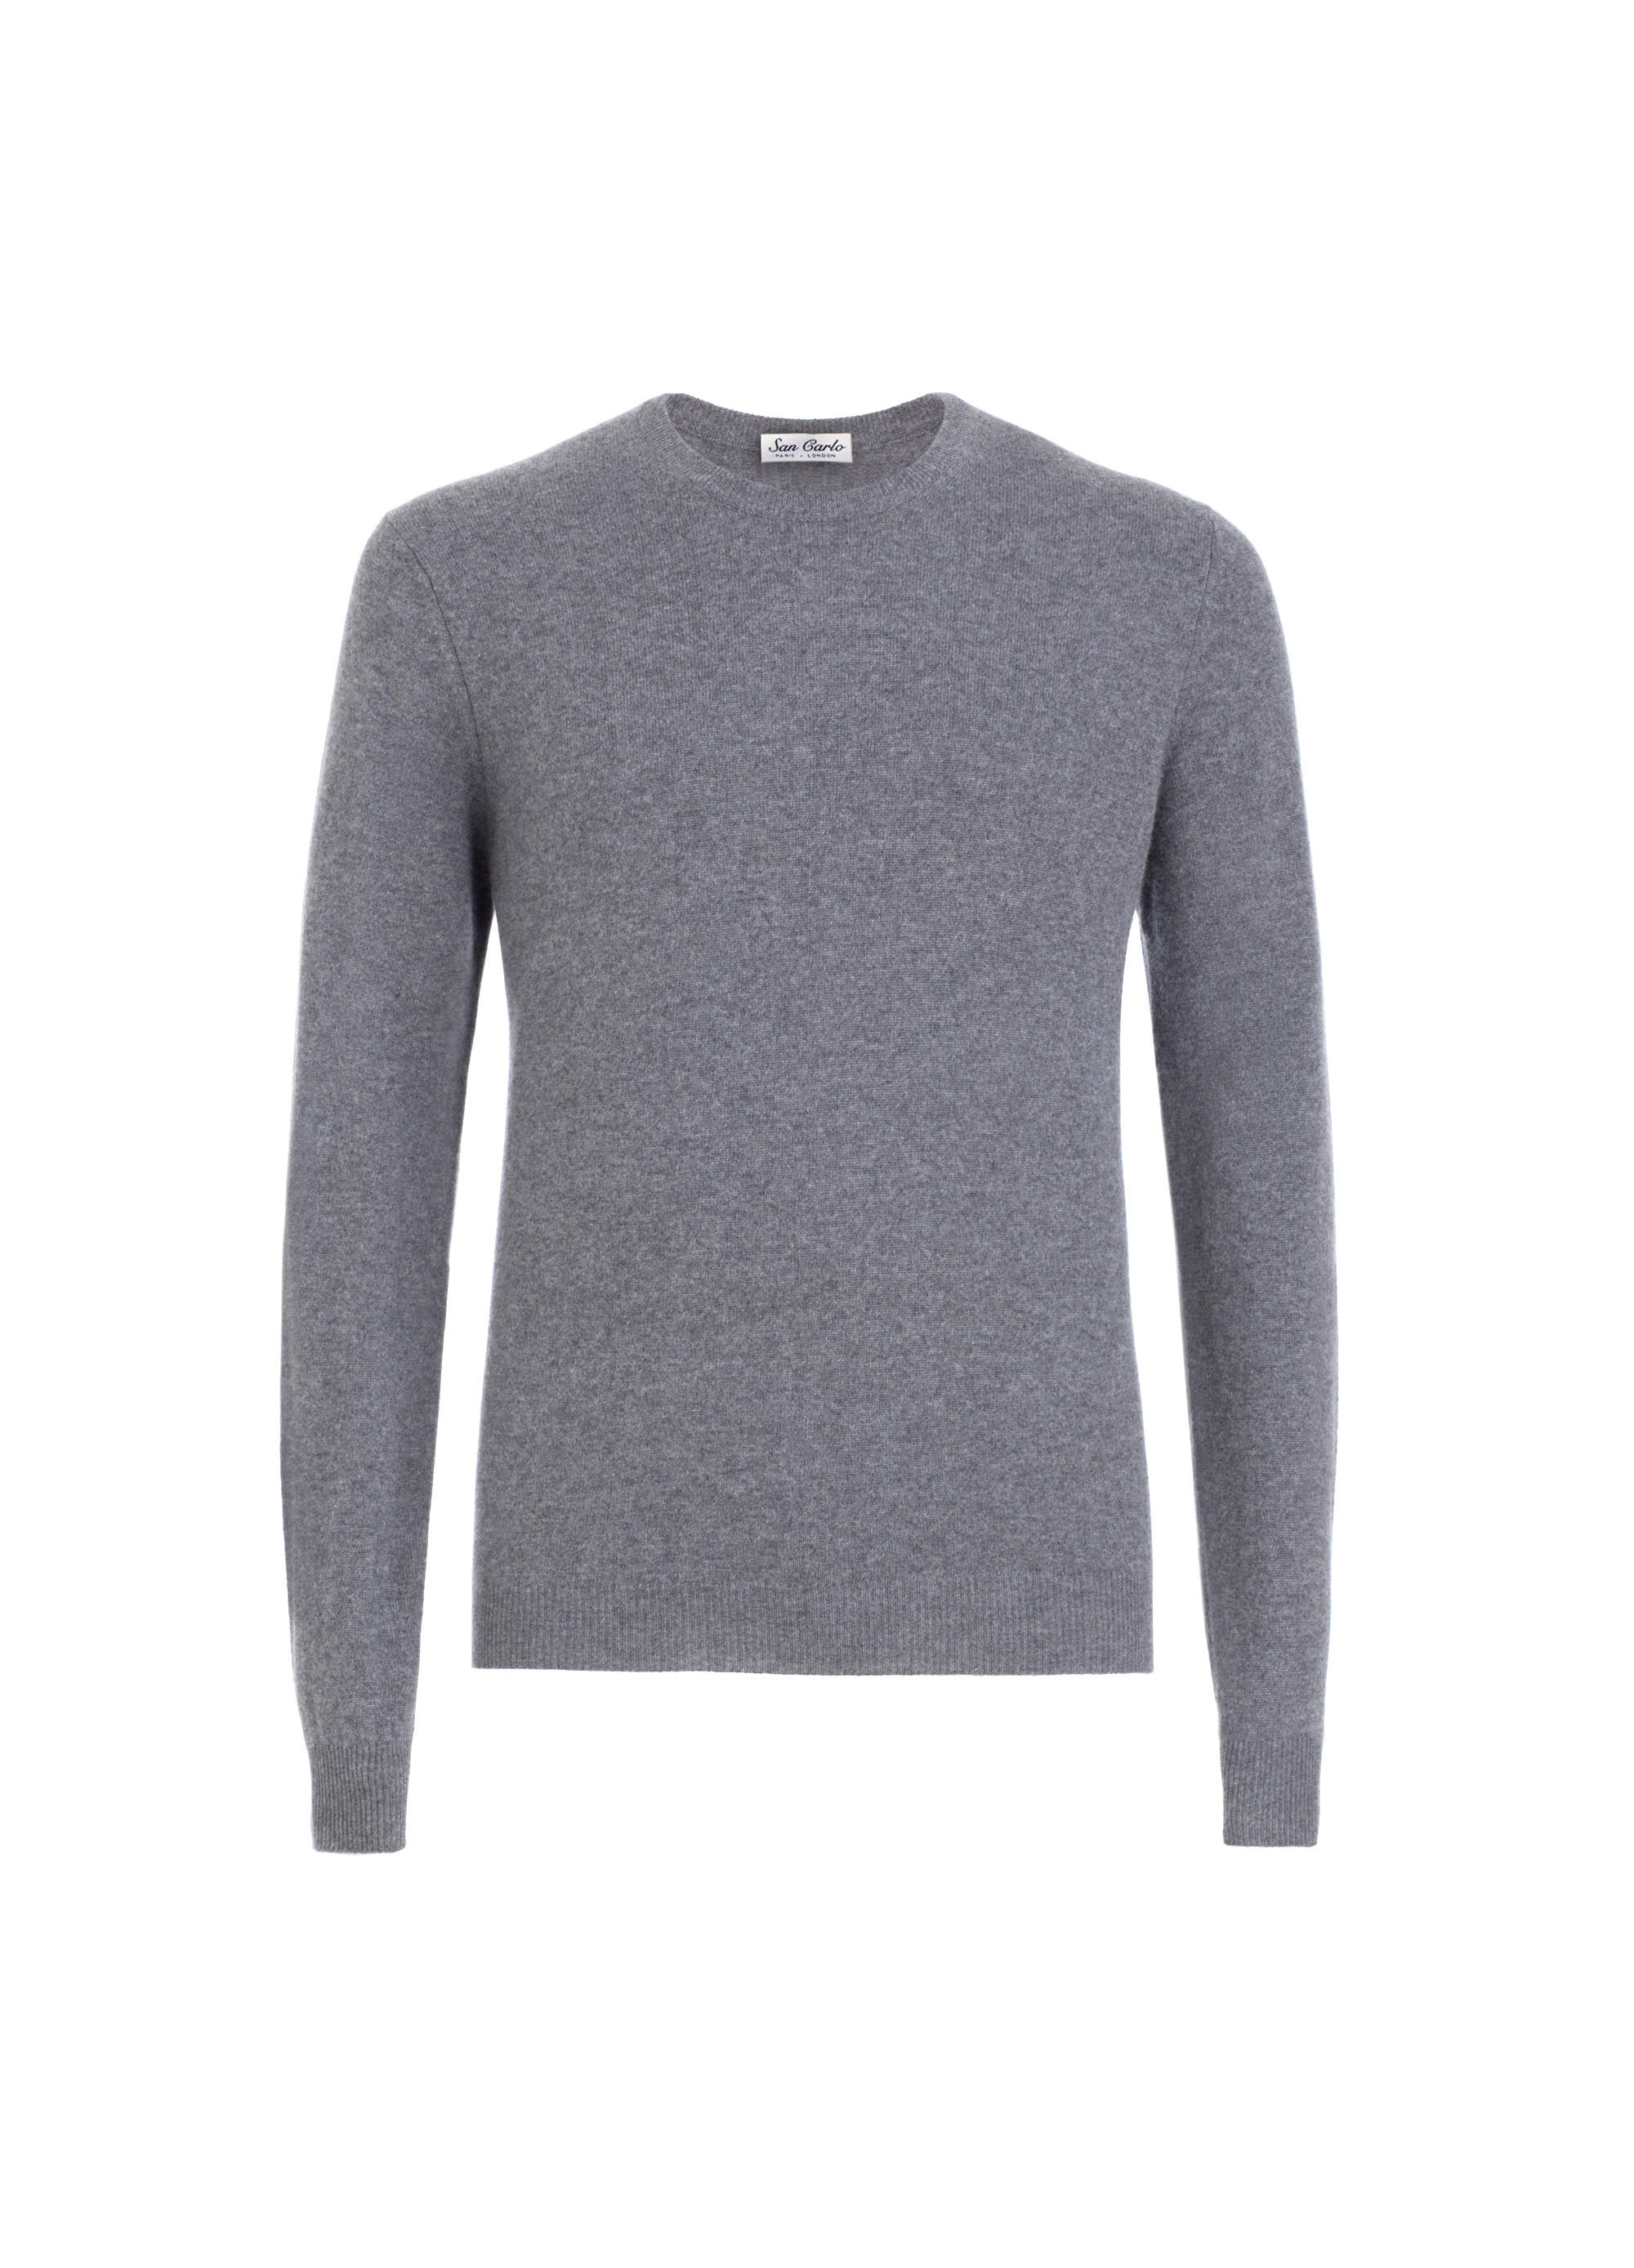 Round Neck Cashmere grey 02